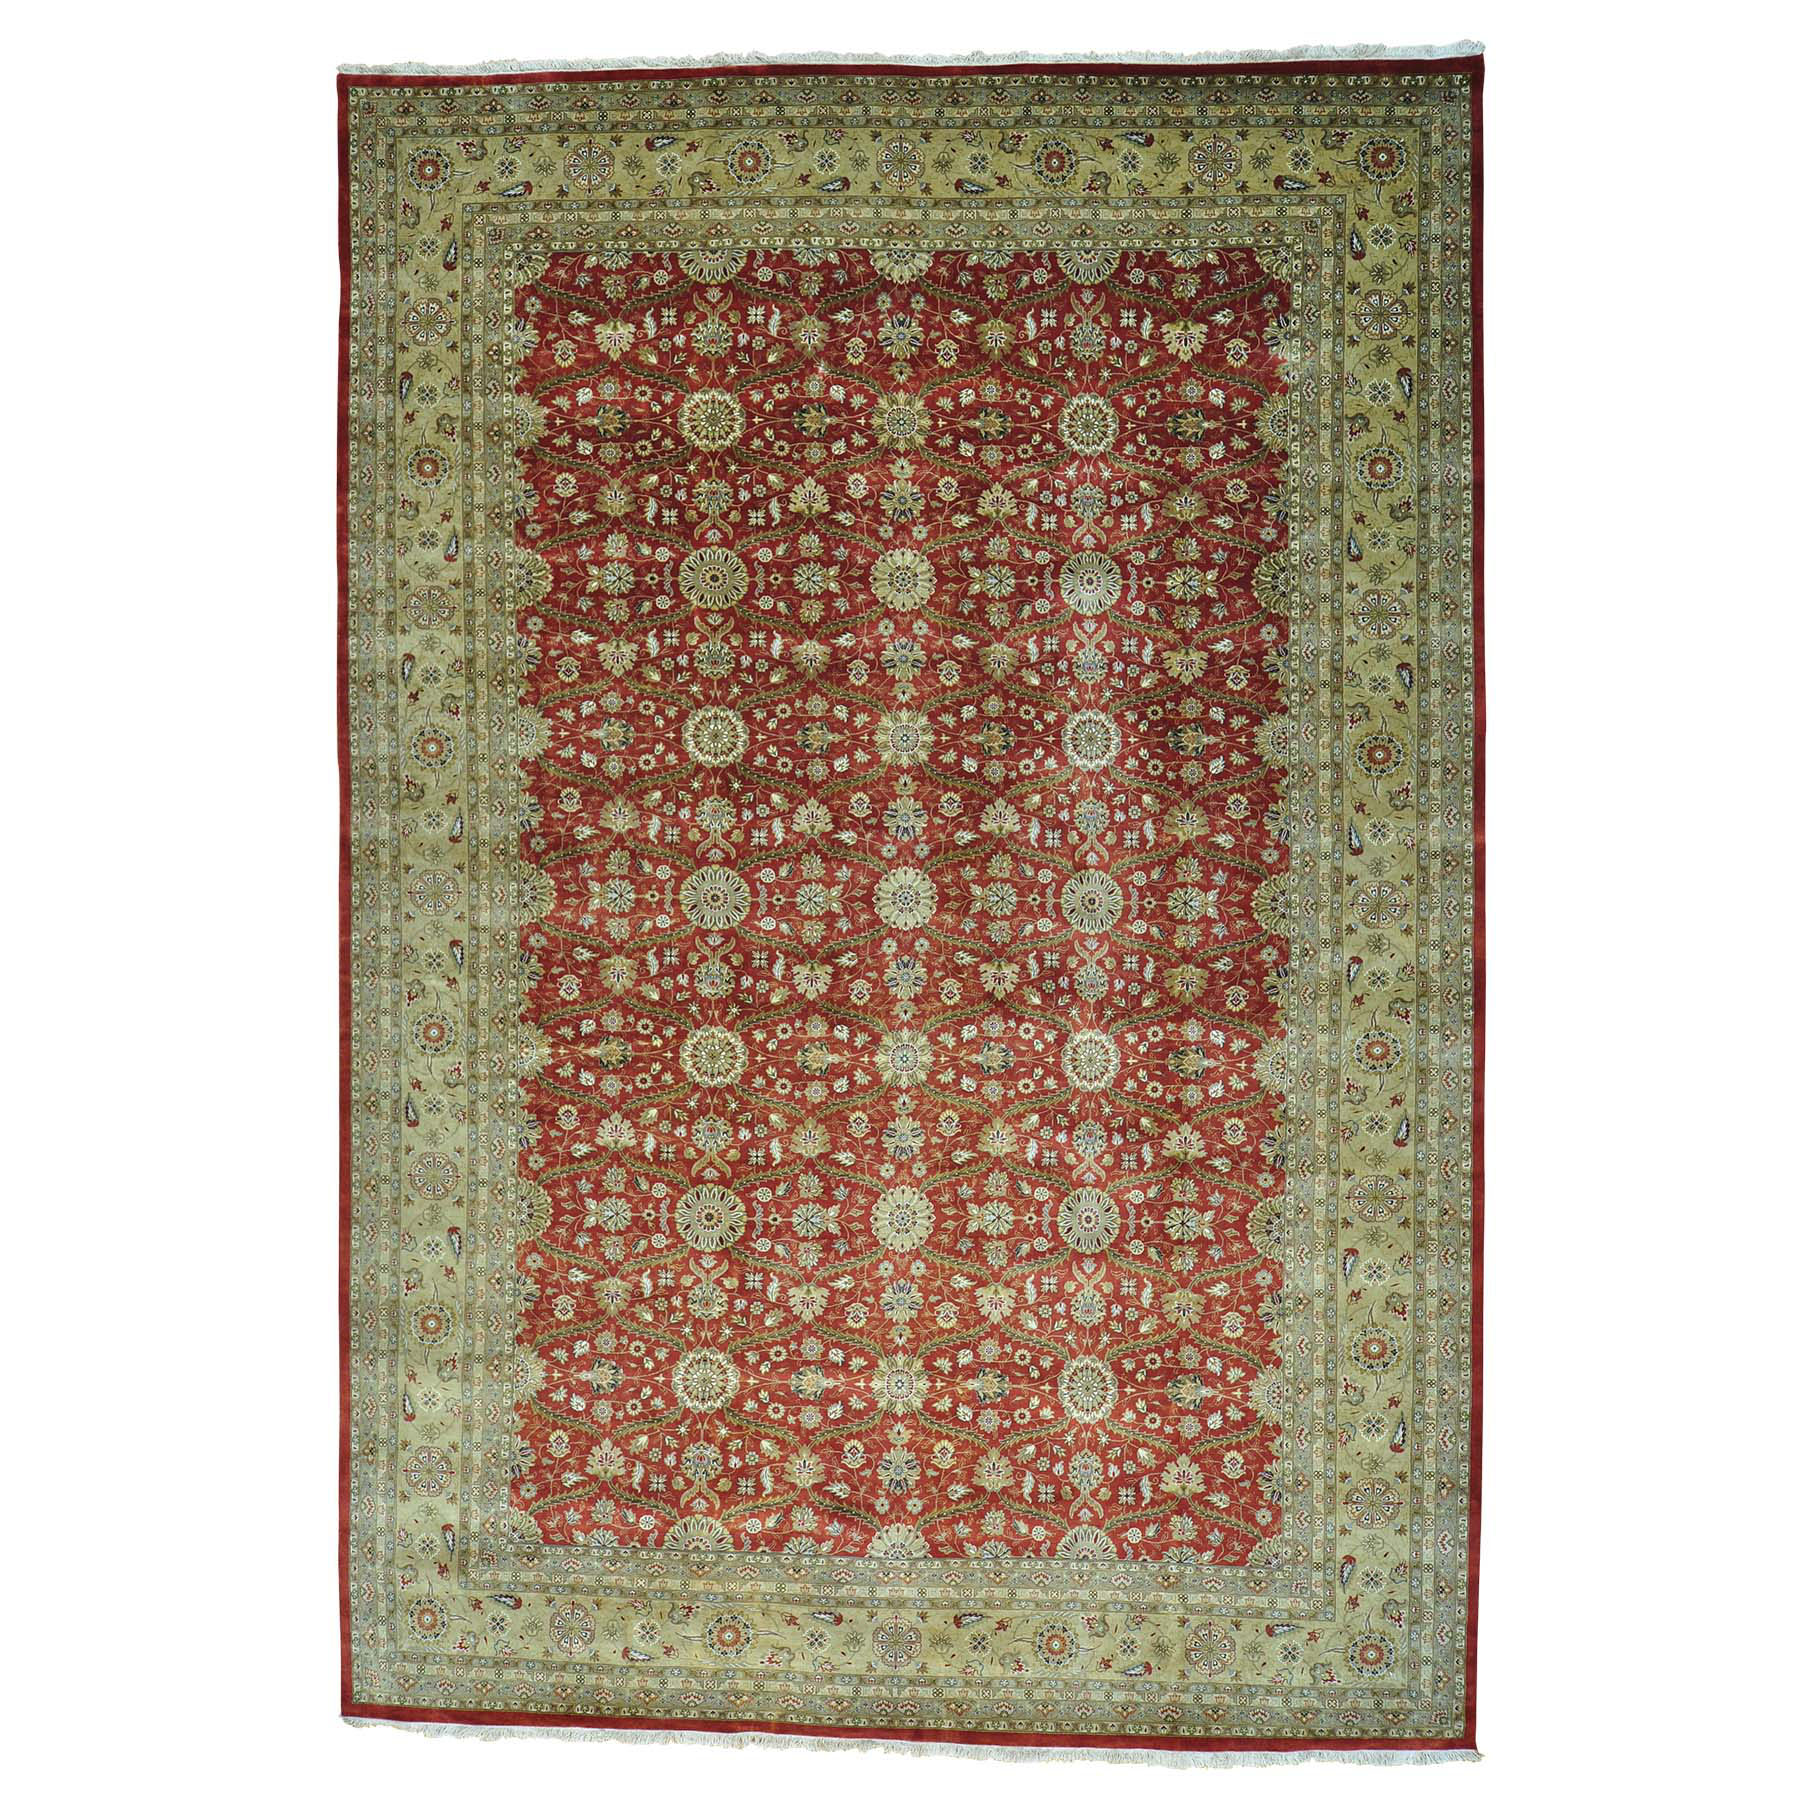 Pirniakan Collection Hand Knotted Red Rug No: 0156806